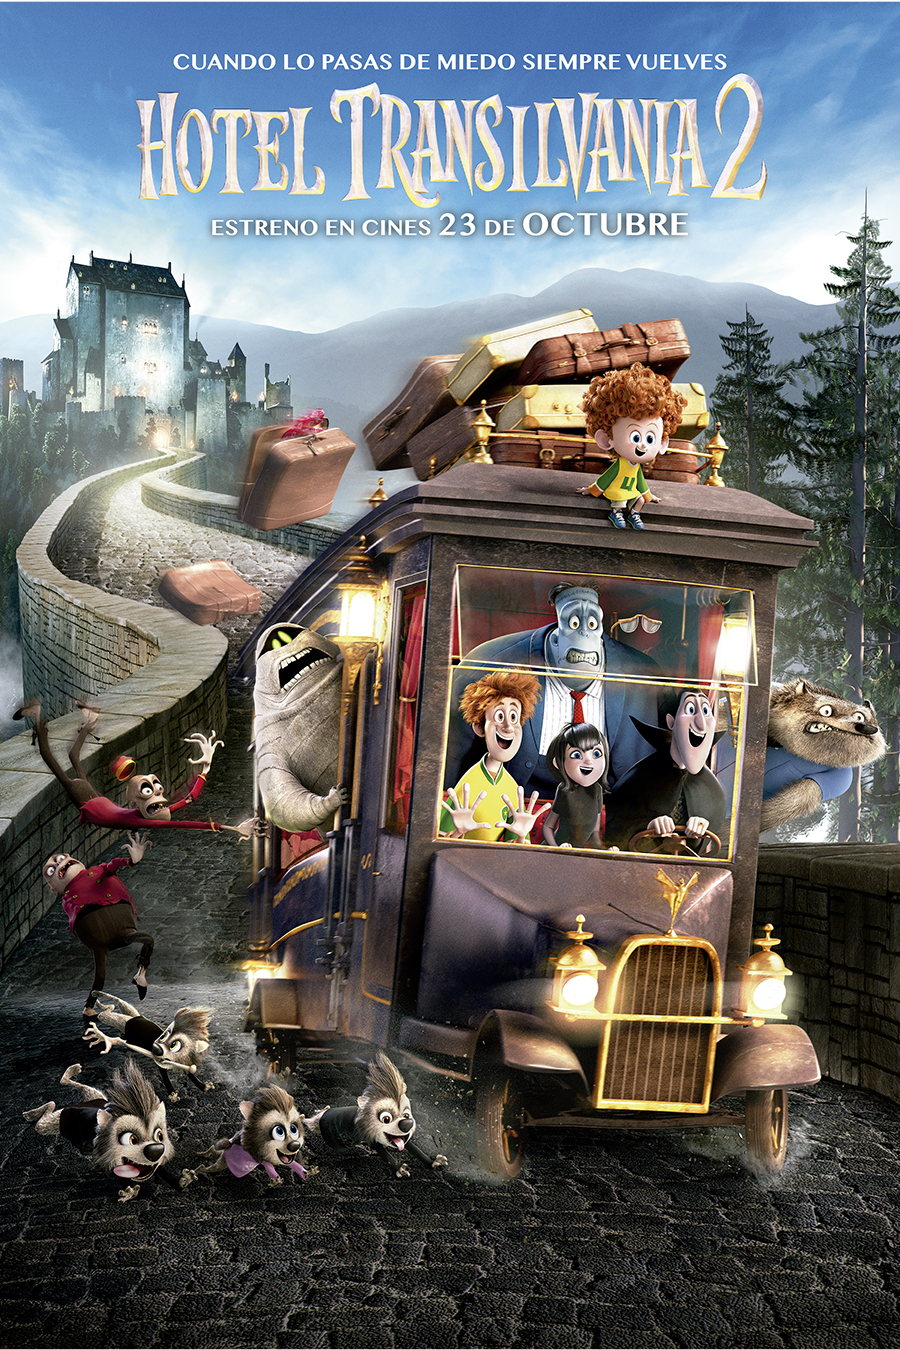 Hotel Transilvania 2 - Poster final TM & © 2015 Sony Pictures Animation Inc. All Rights Reserved.